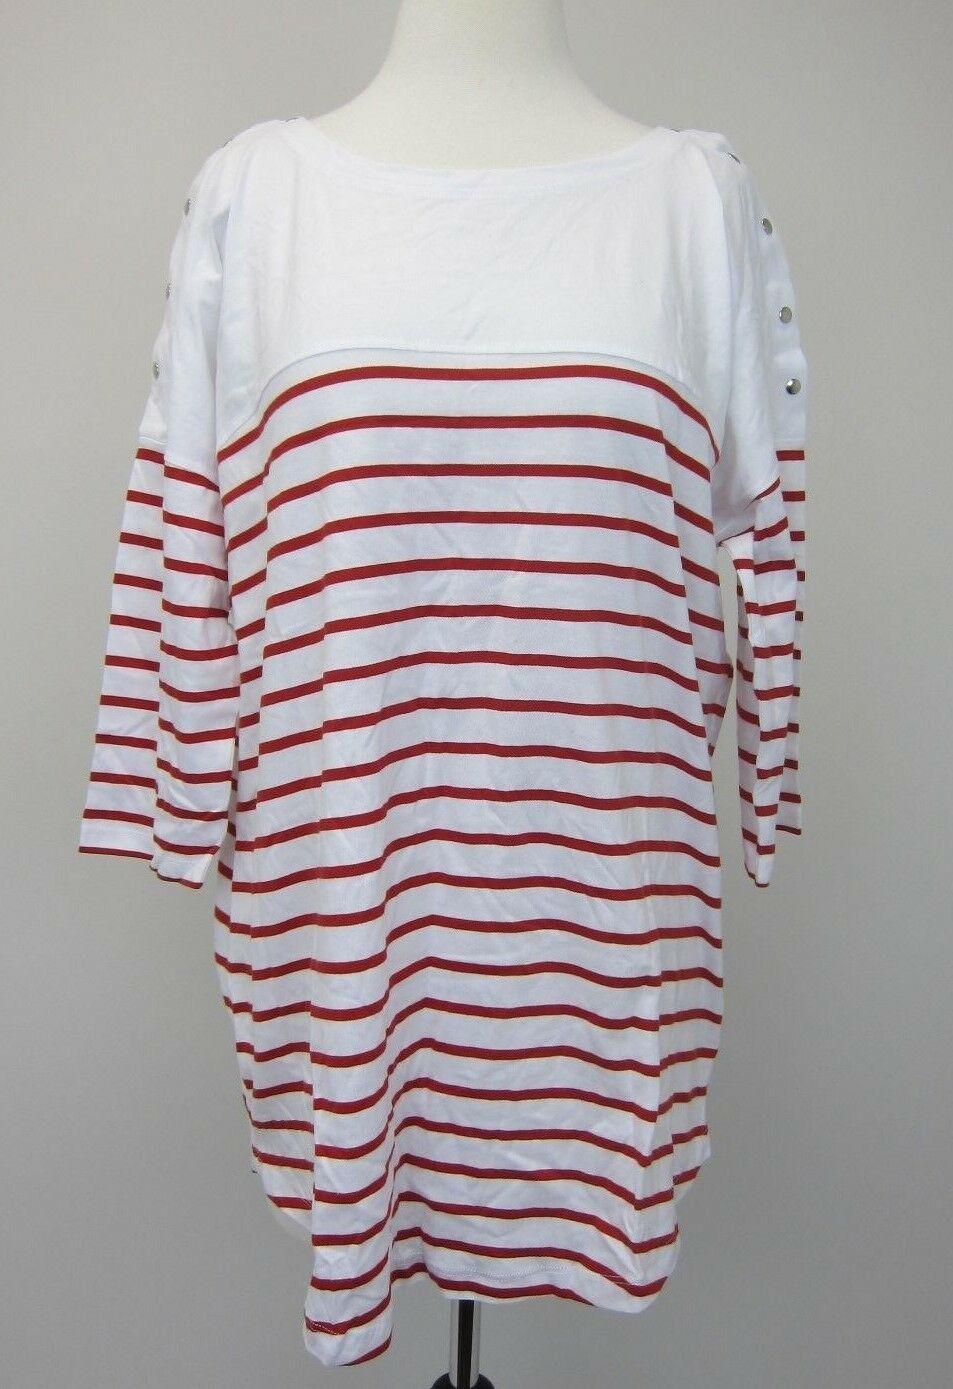 Seraphine Women's Striped Cotton Maternity & Nursing Top US 12 White Red  NWT